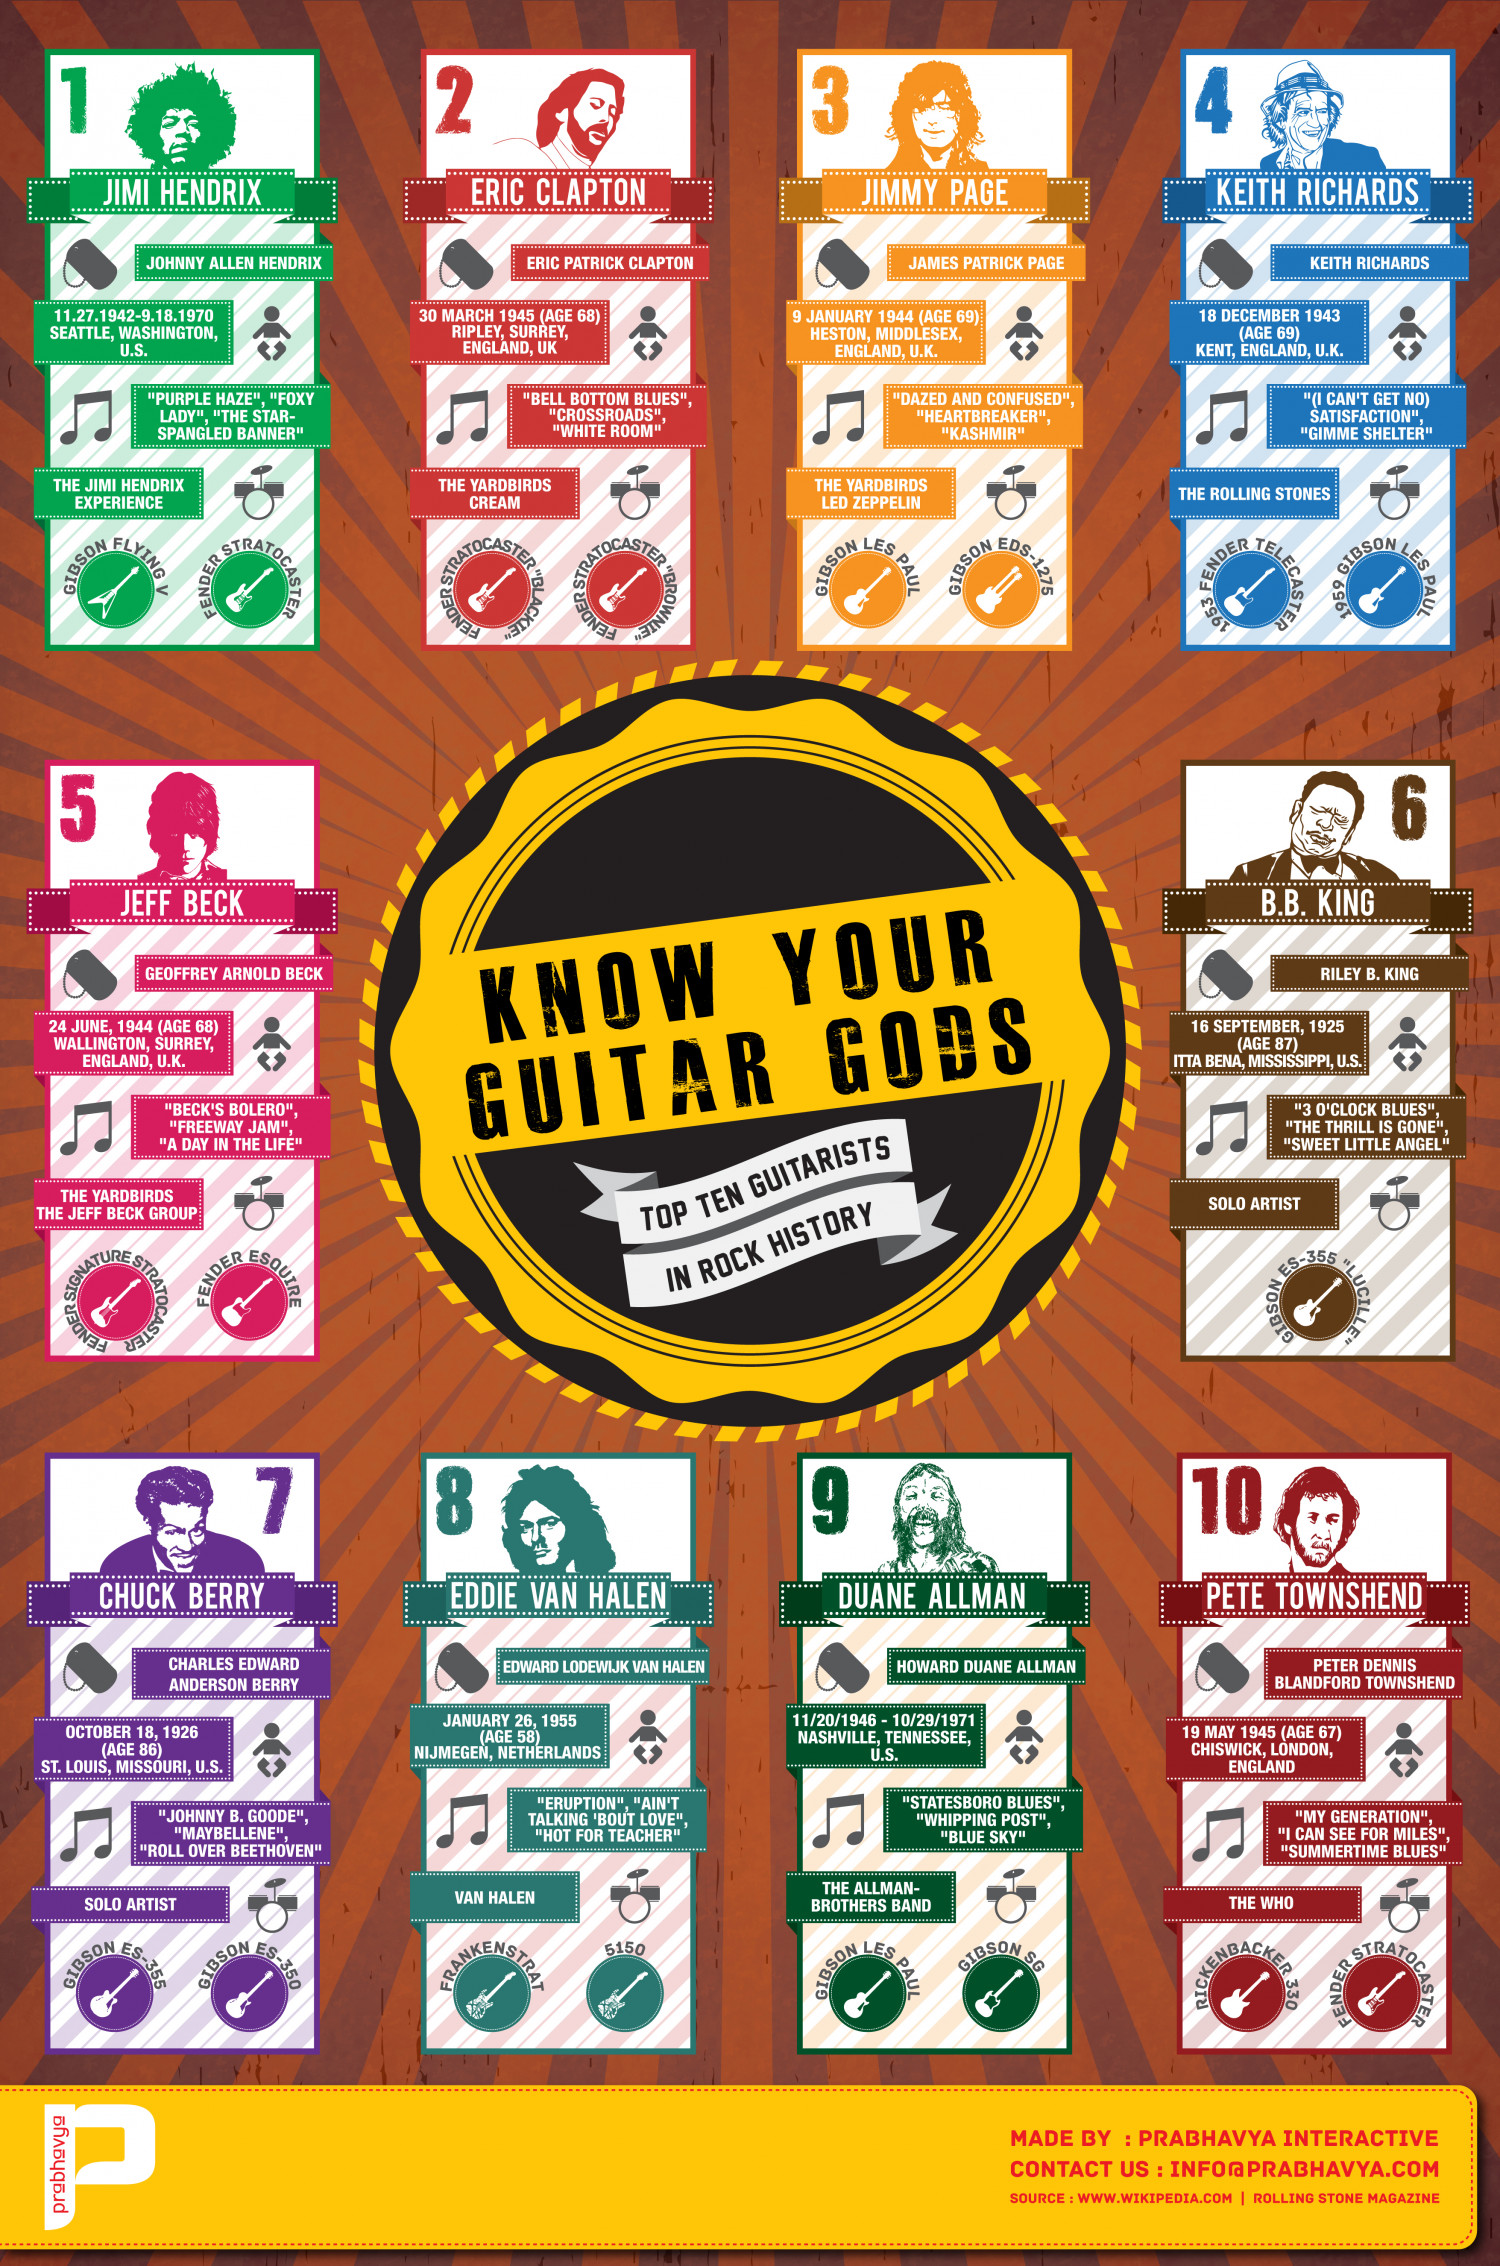 10 Most Influential Guitarists of Rock History Infographic